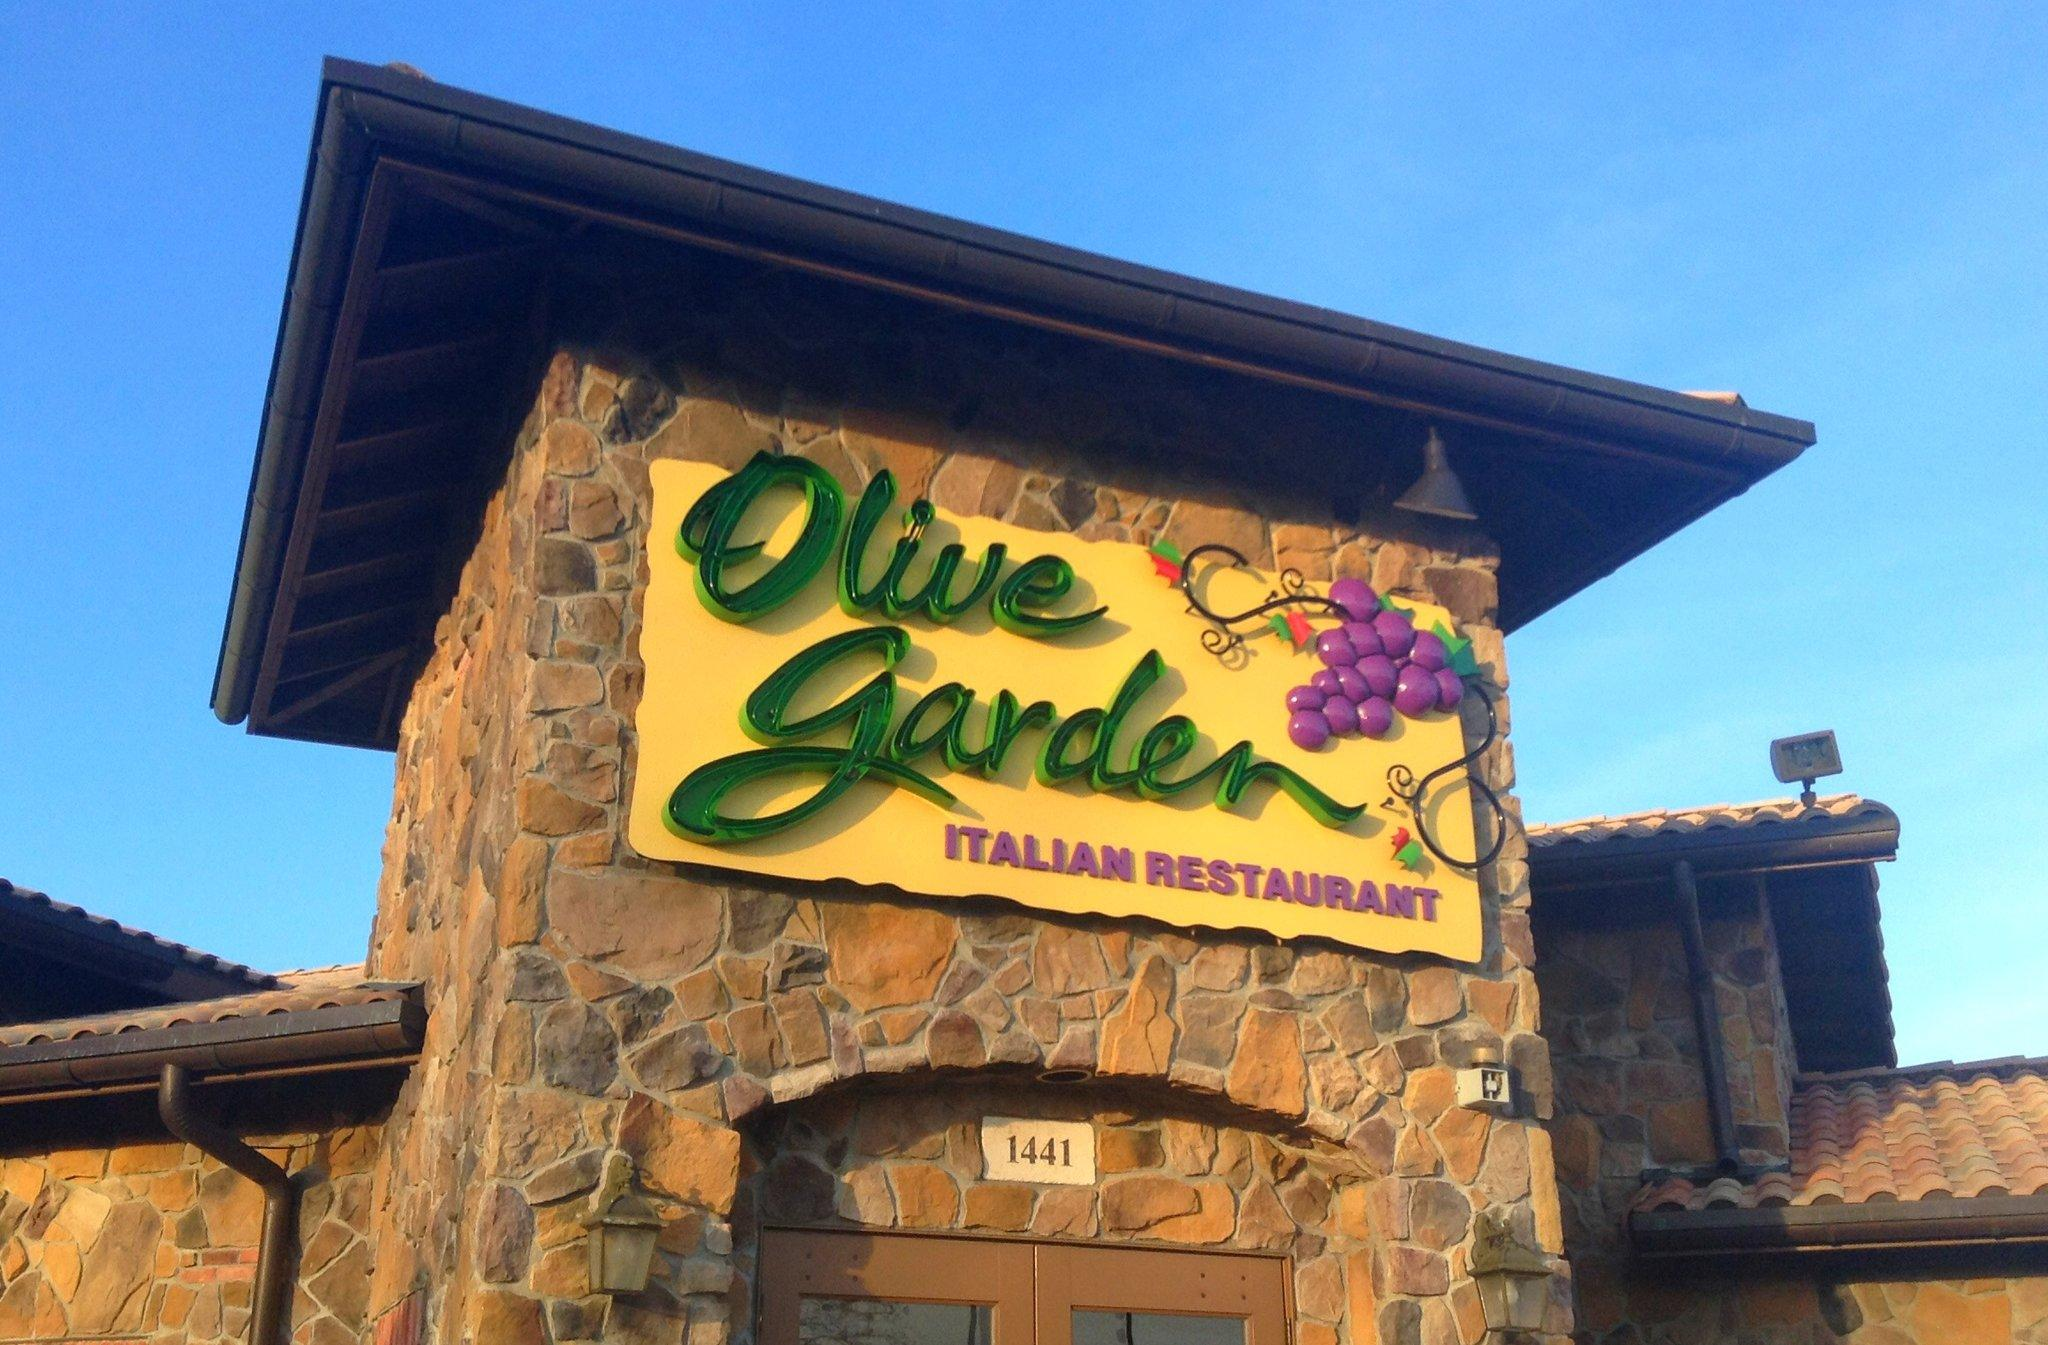 7 Things You Never Knew About Olive Garden, Straight From an Employee